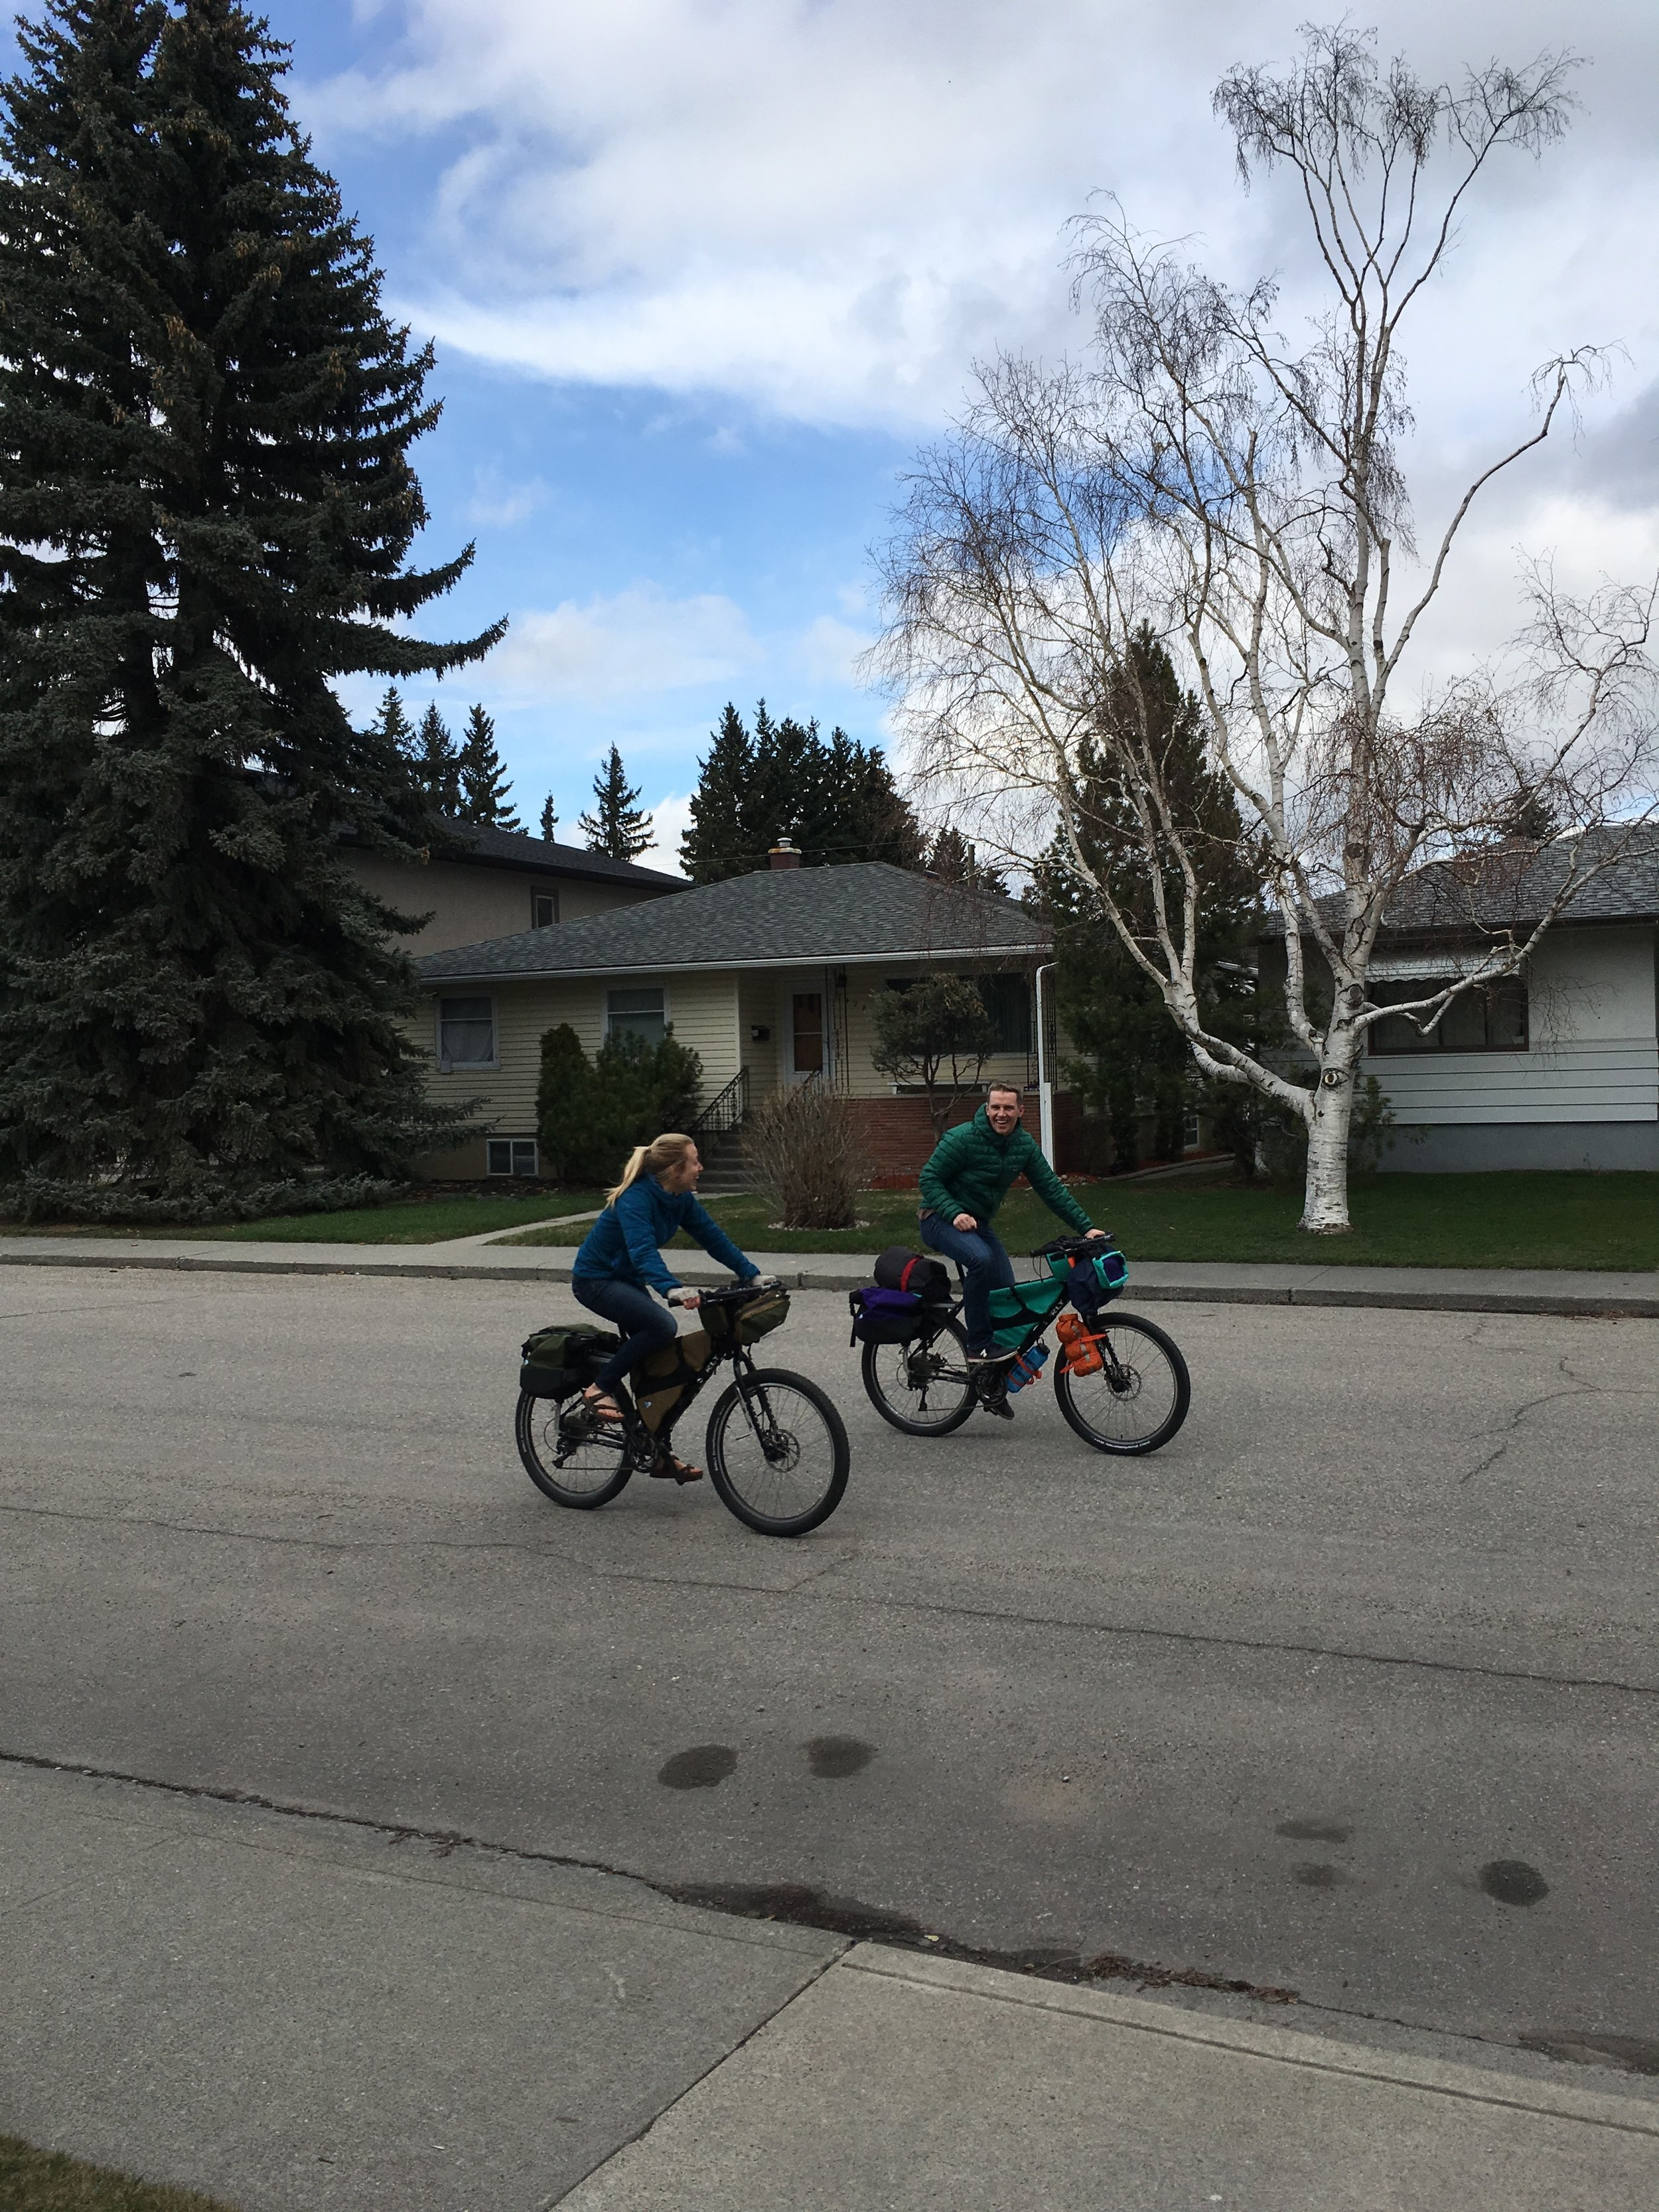 Test rides down the street.